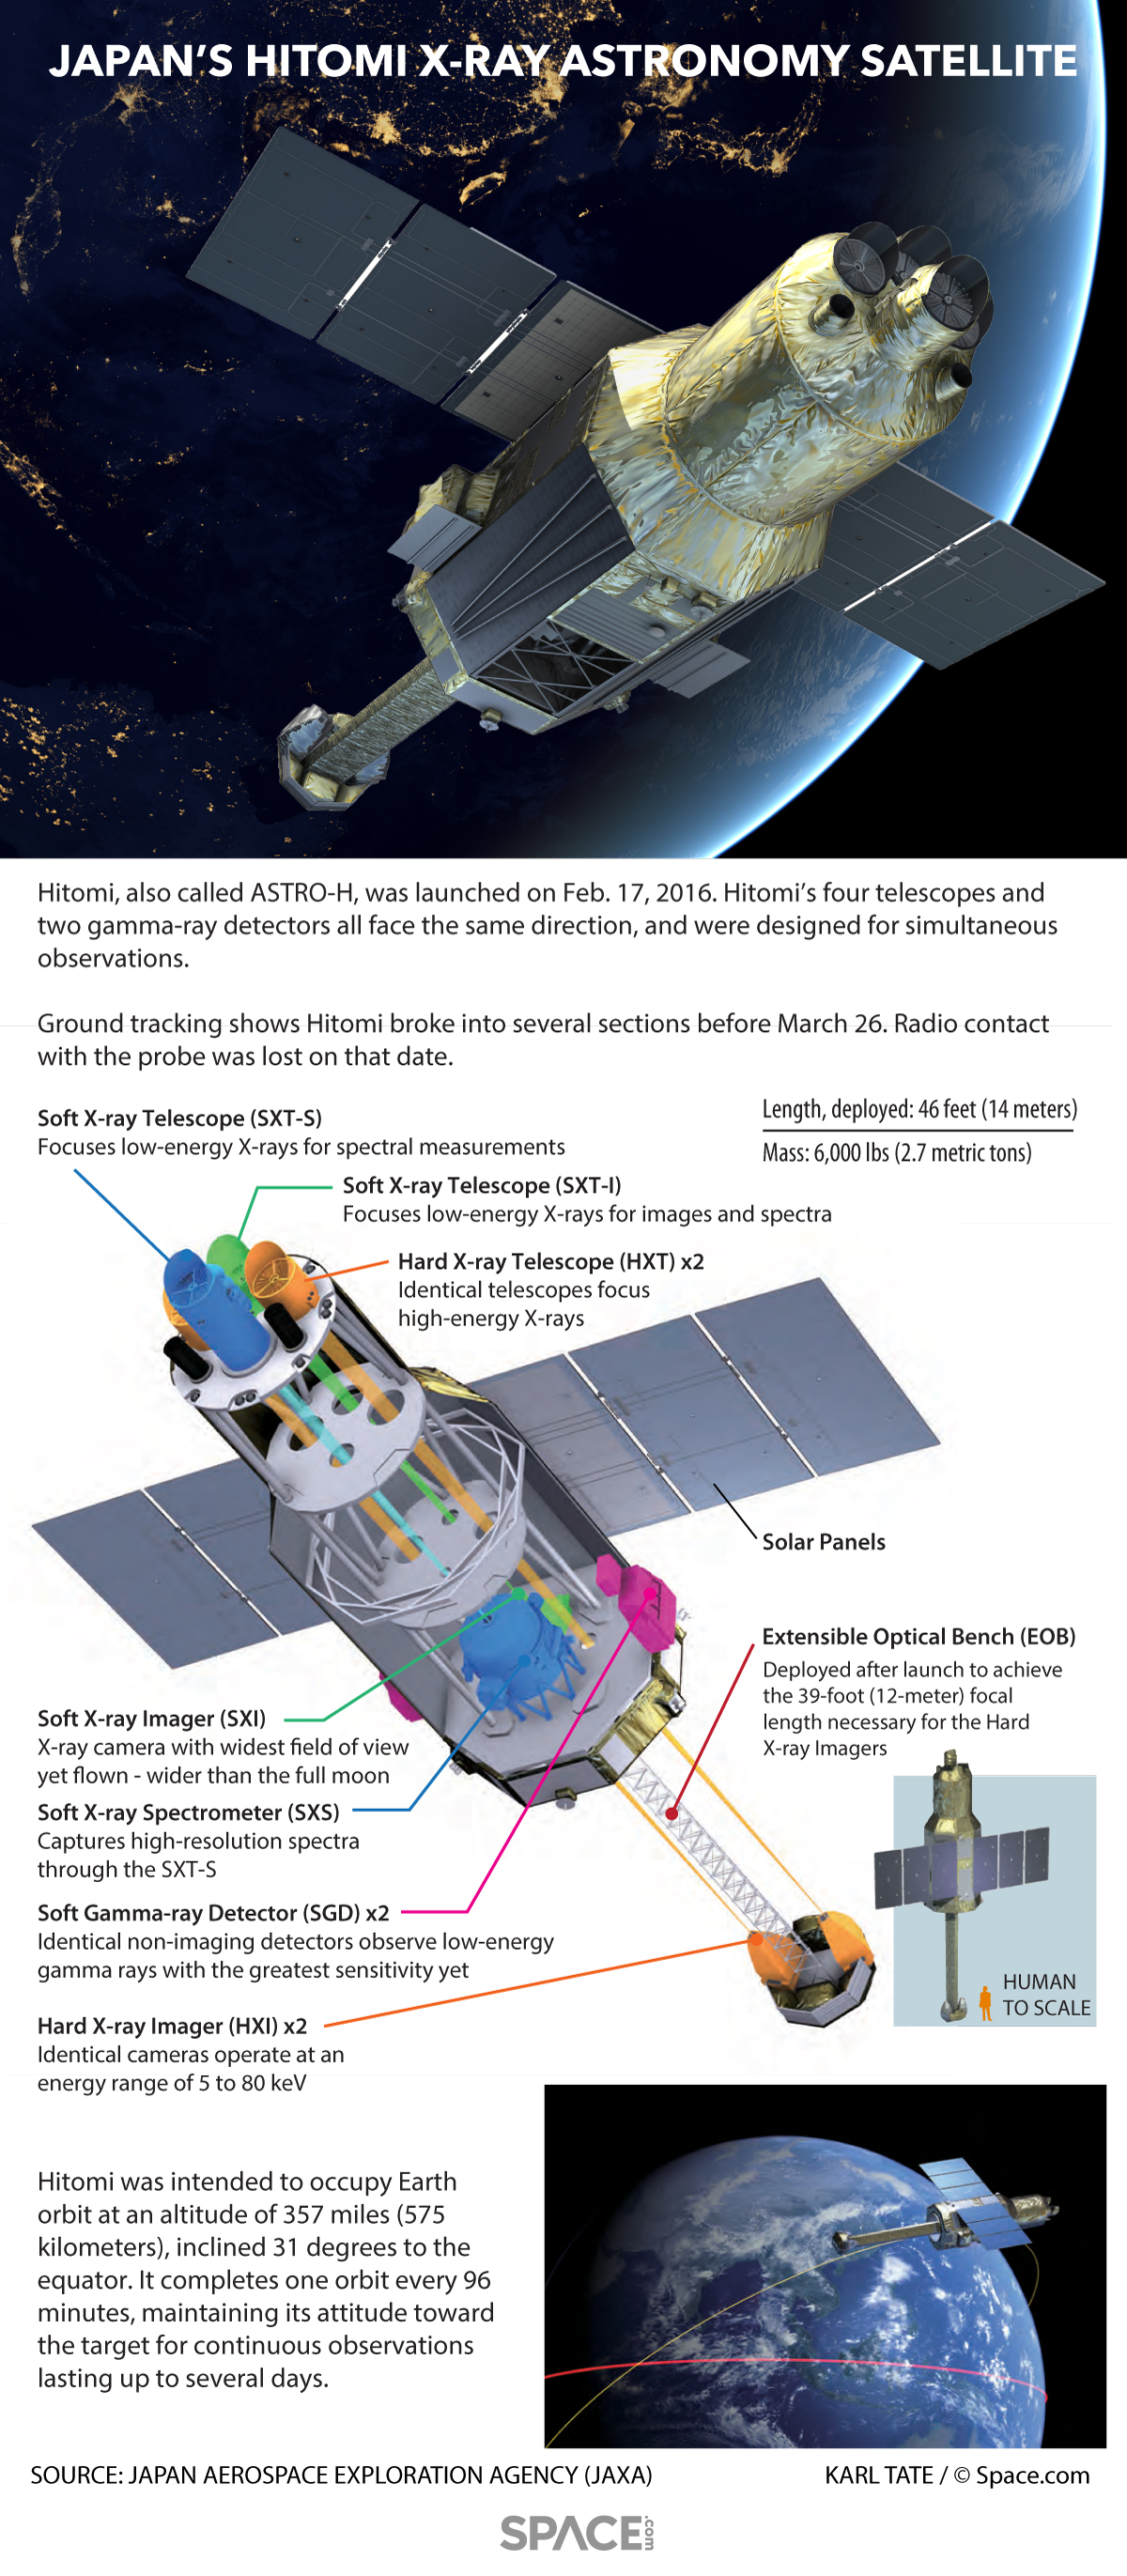 Hitomi: Japan's X-Ray Astronomy Satellite Explained (Infographic)